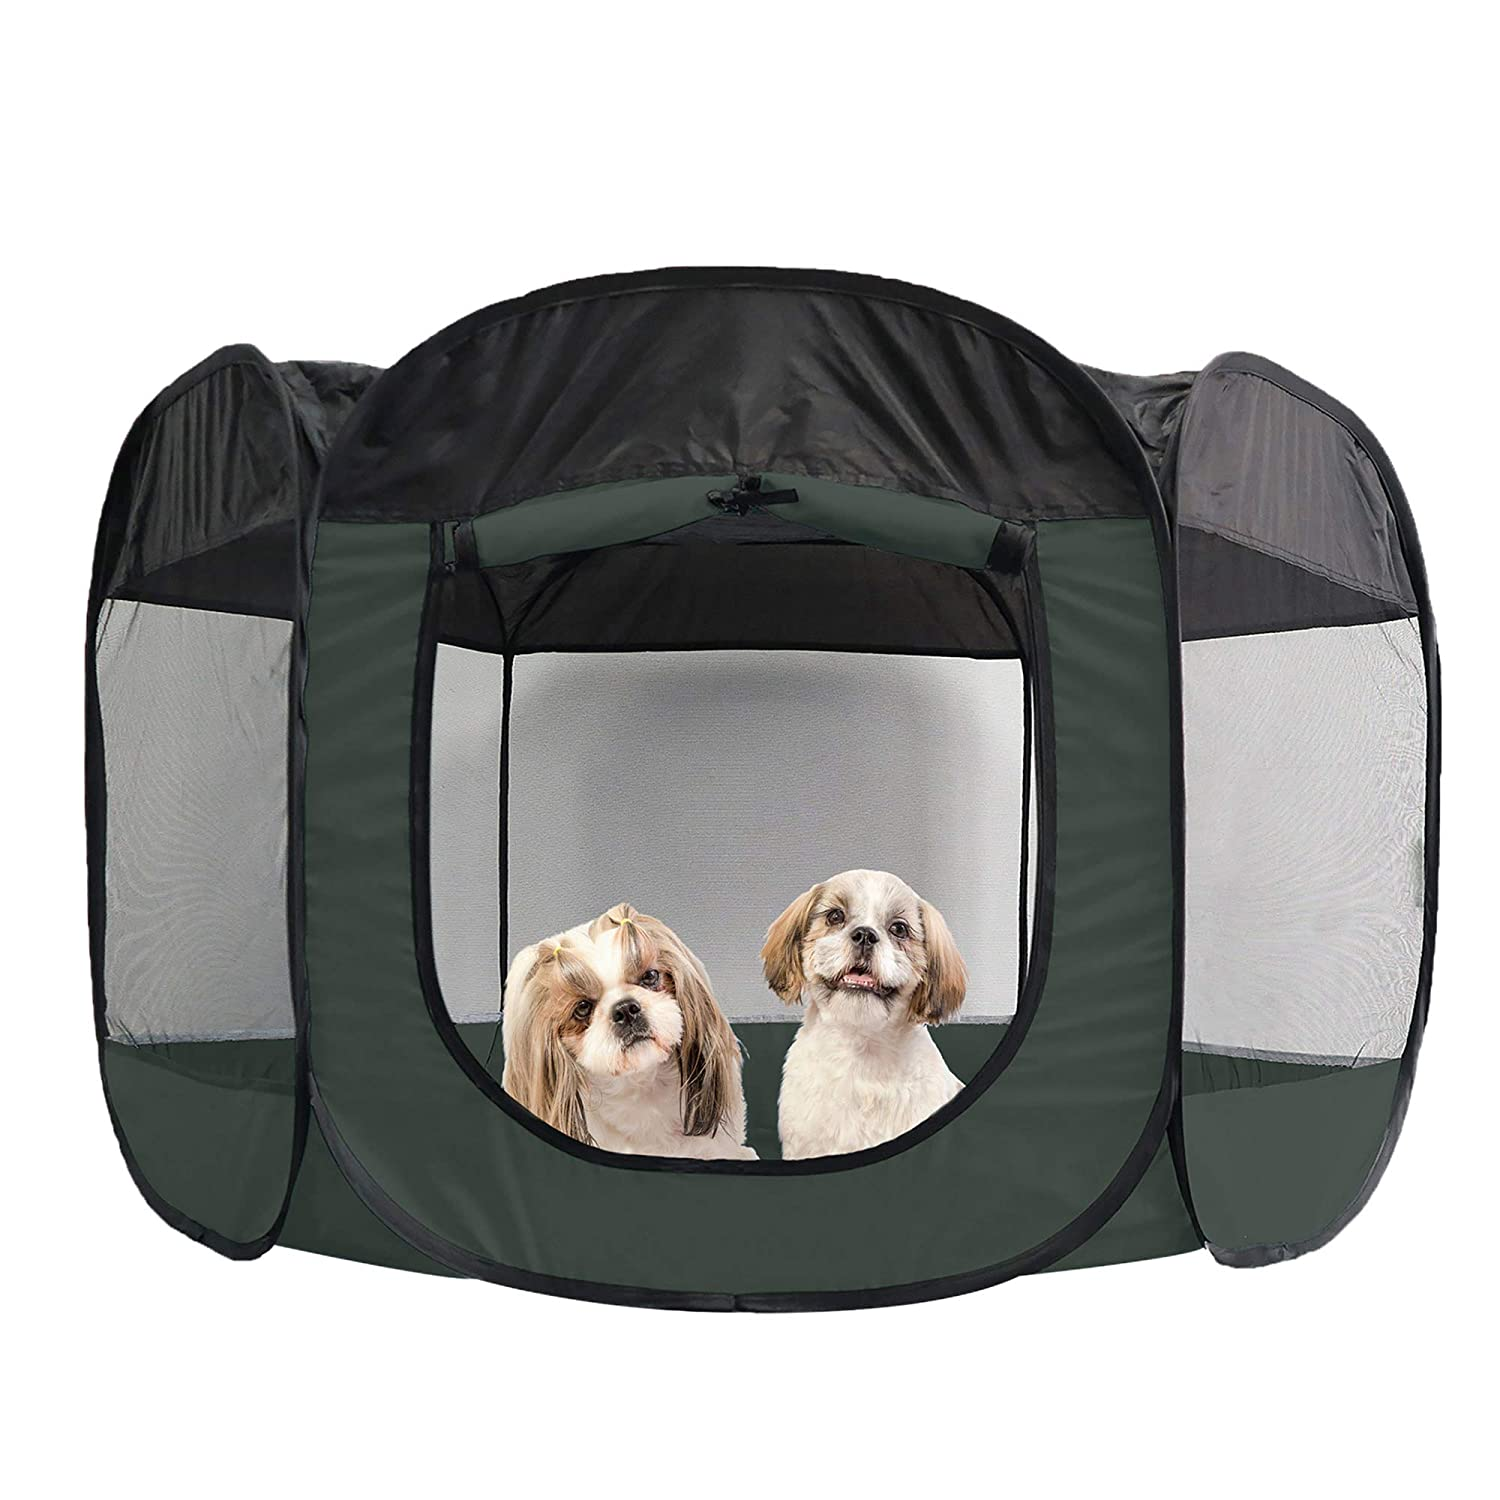 Furhaven Pet Playpen - Indoor-Outdoor Mesh Open-Air Playpen and Exercise Pen Tent House Playground for Dogs and Cats, Hunter Green, Extra Large: Pet Supplies